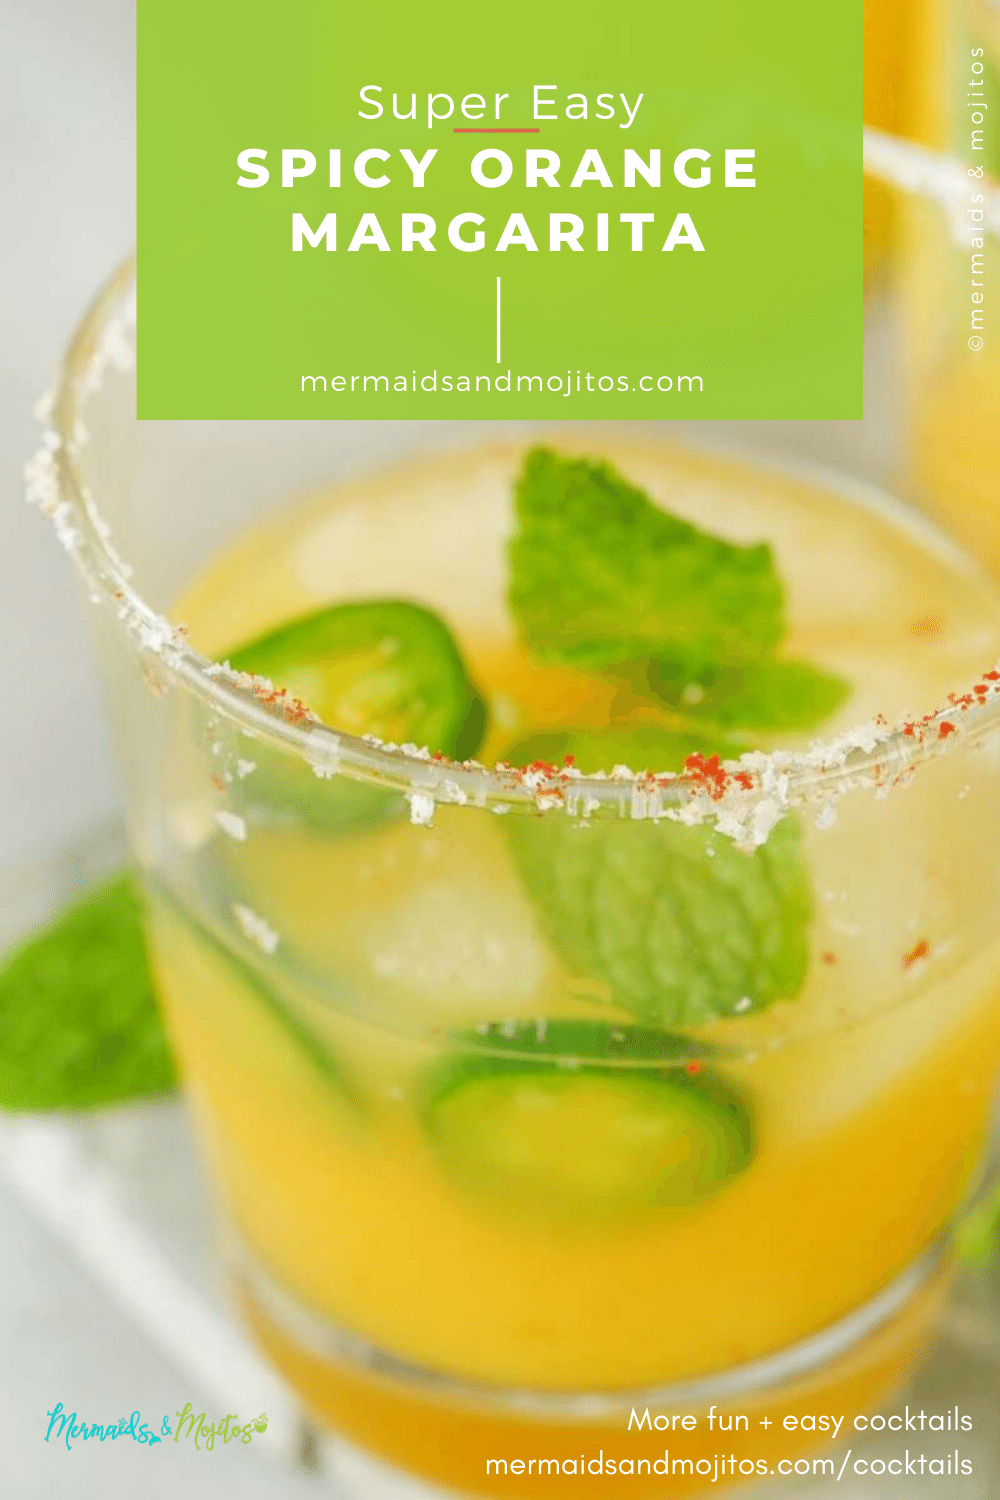 Spicy Orange Muddled Margarita Recipe